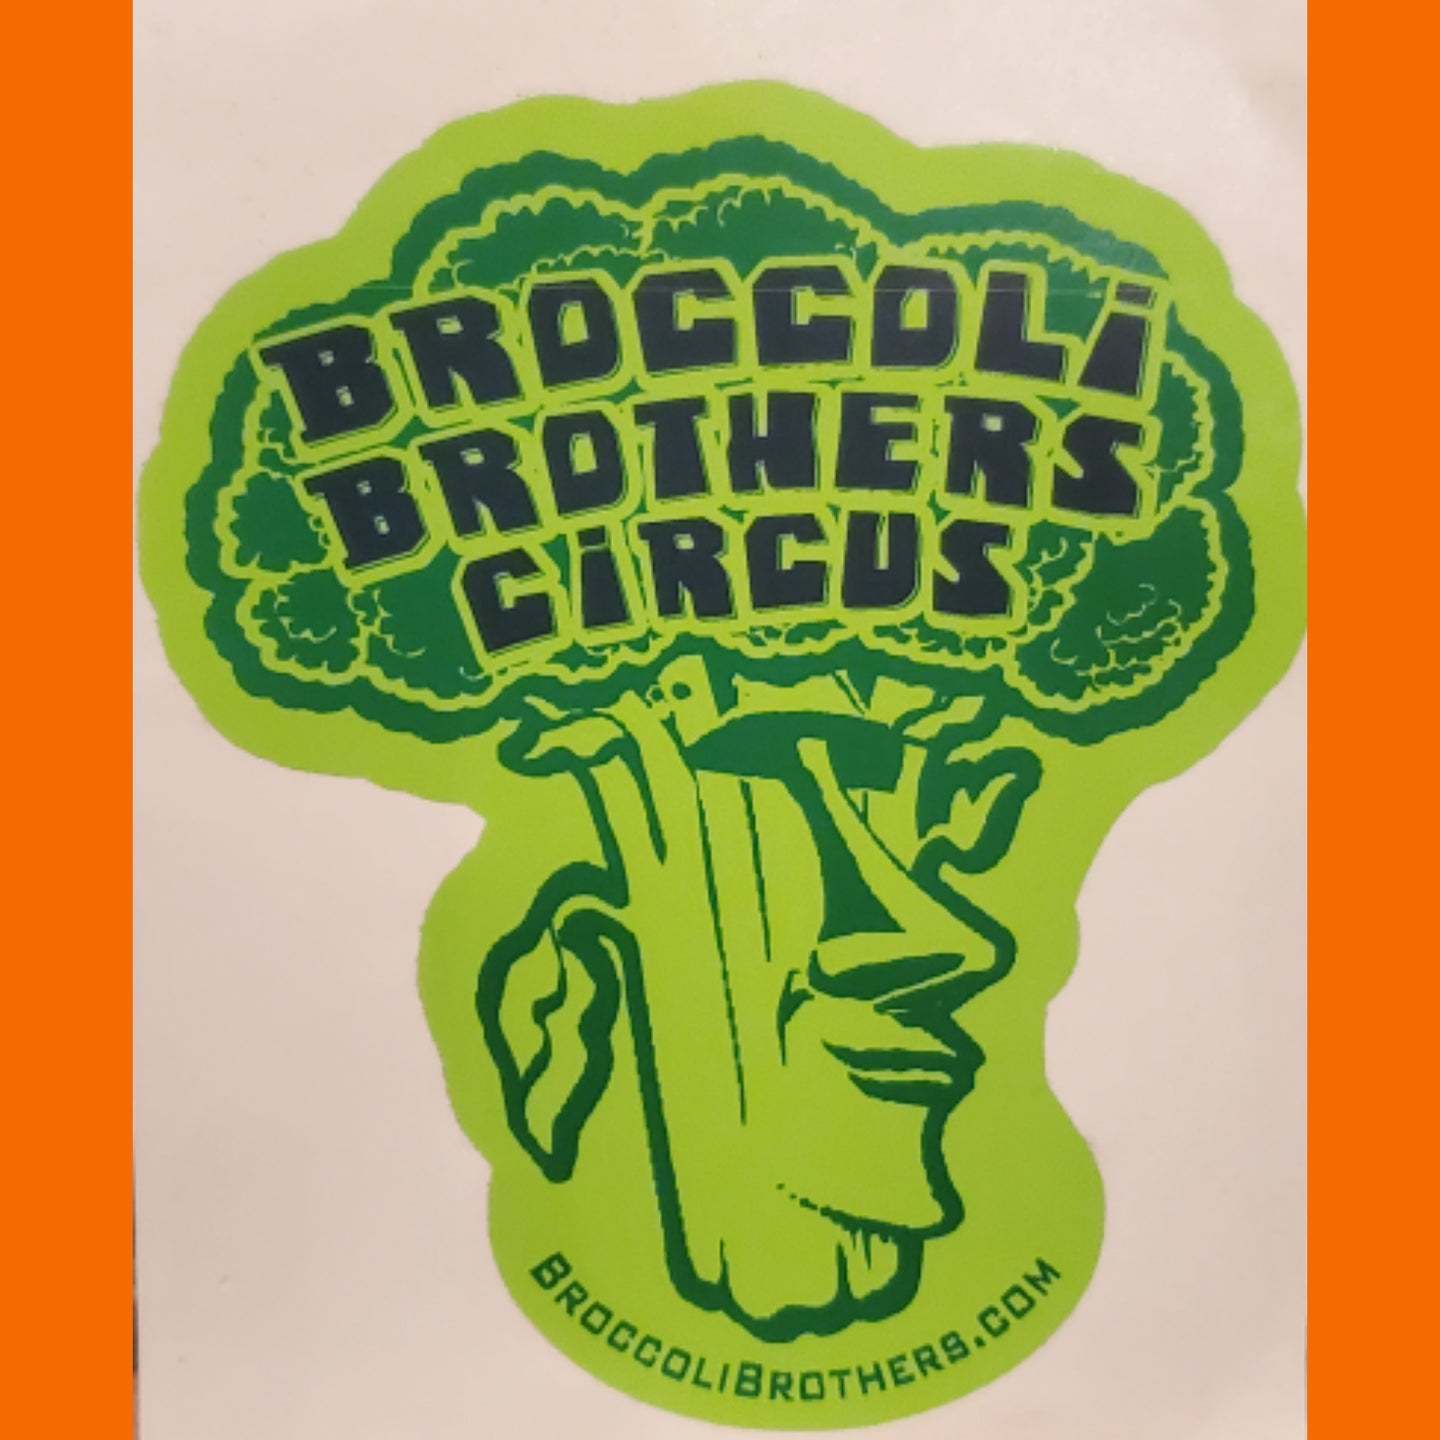 Broccoli brothers circus large bumper sticker 3 pack